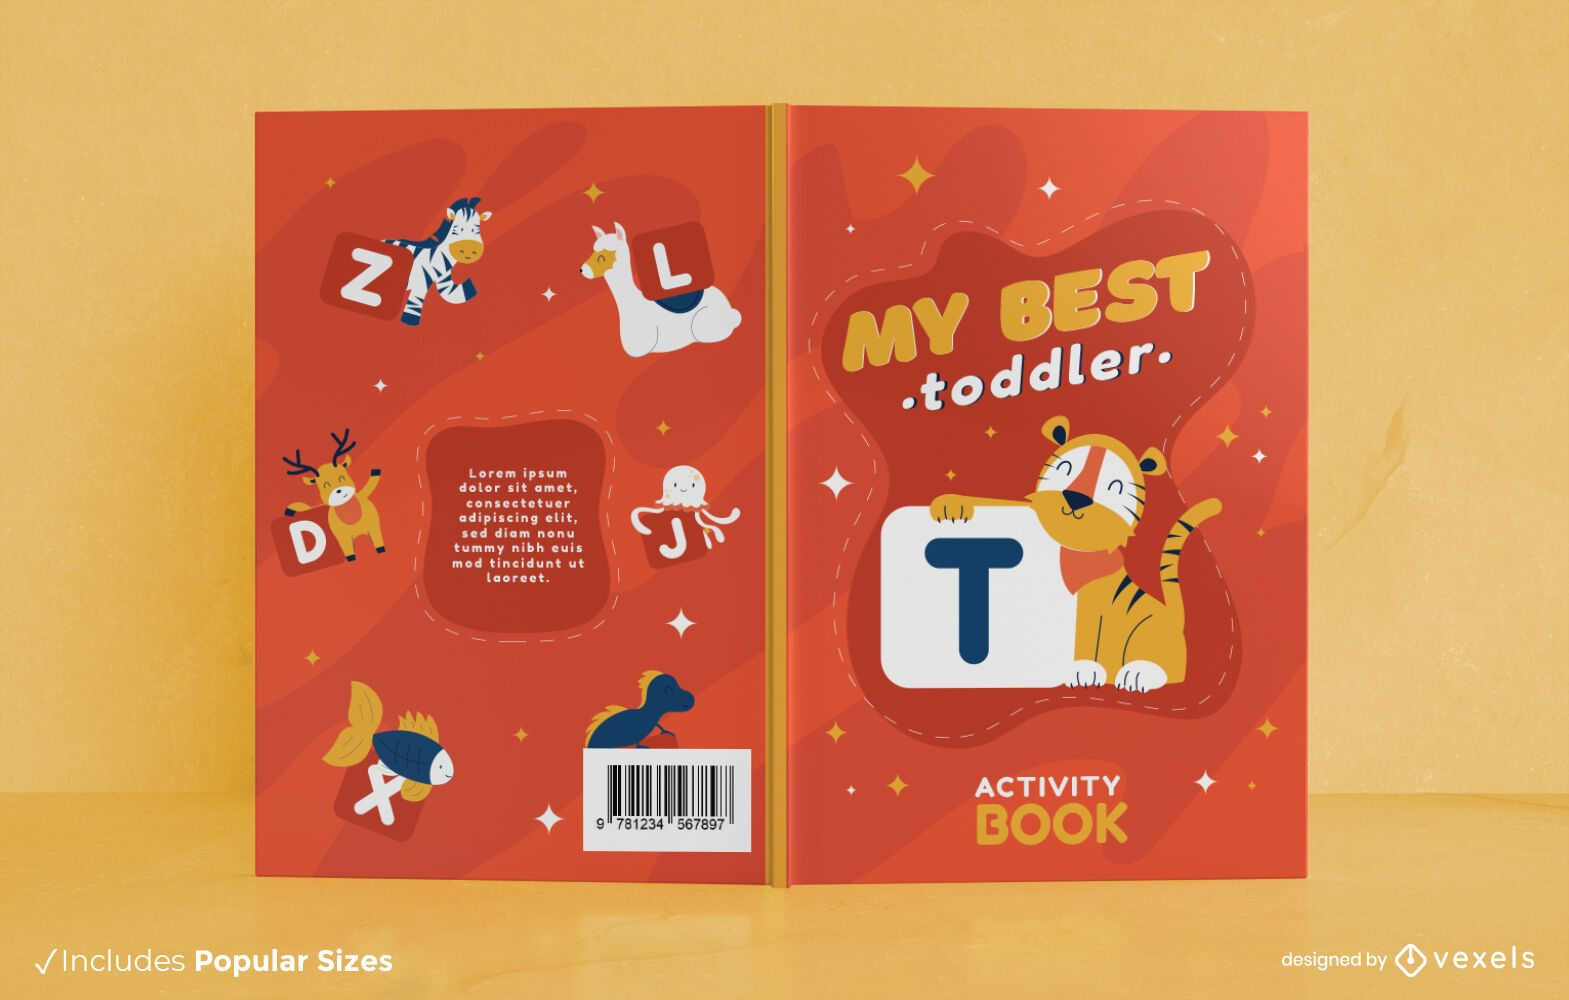 My best toddler book cover design